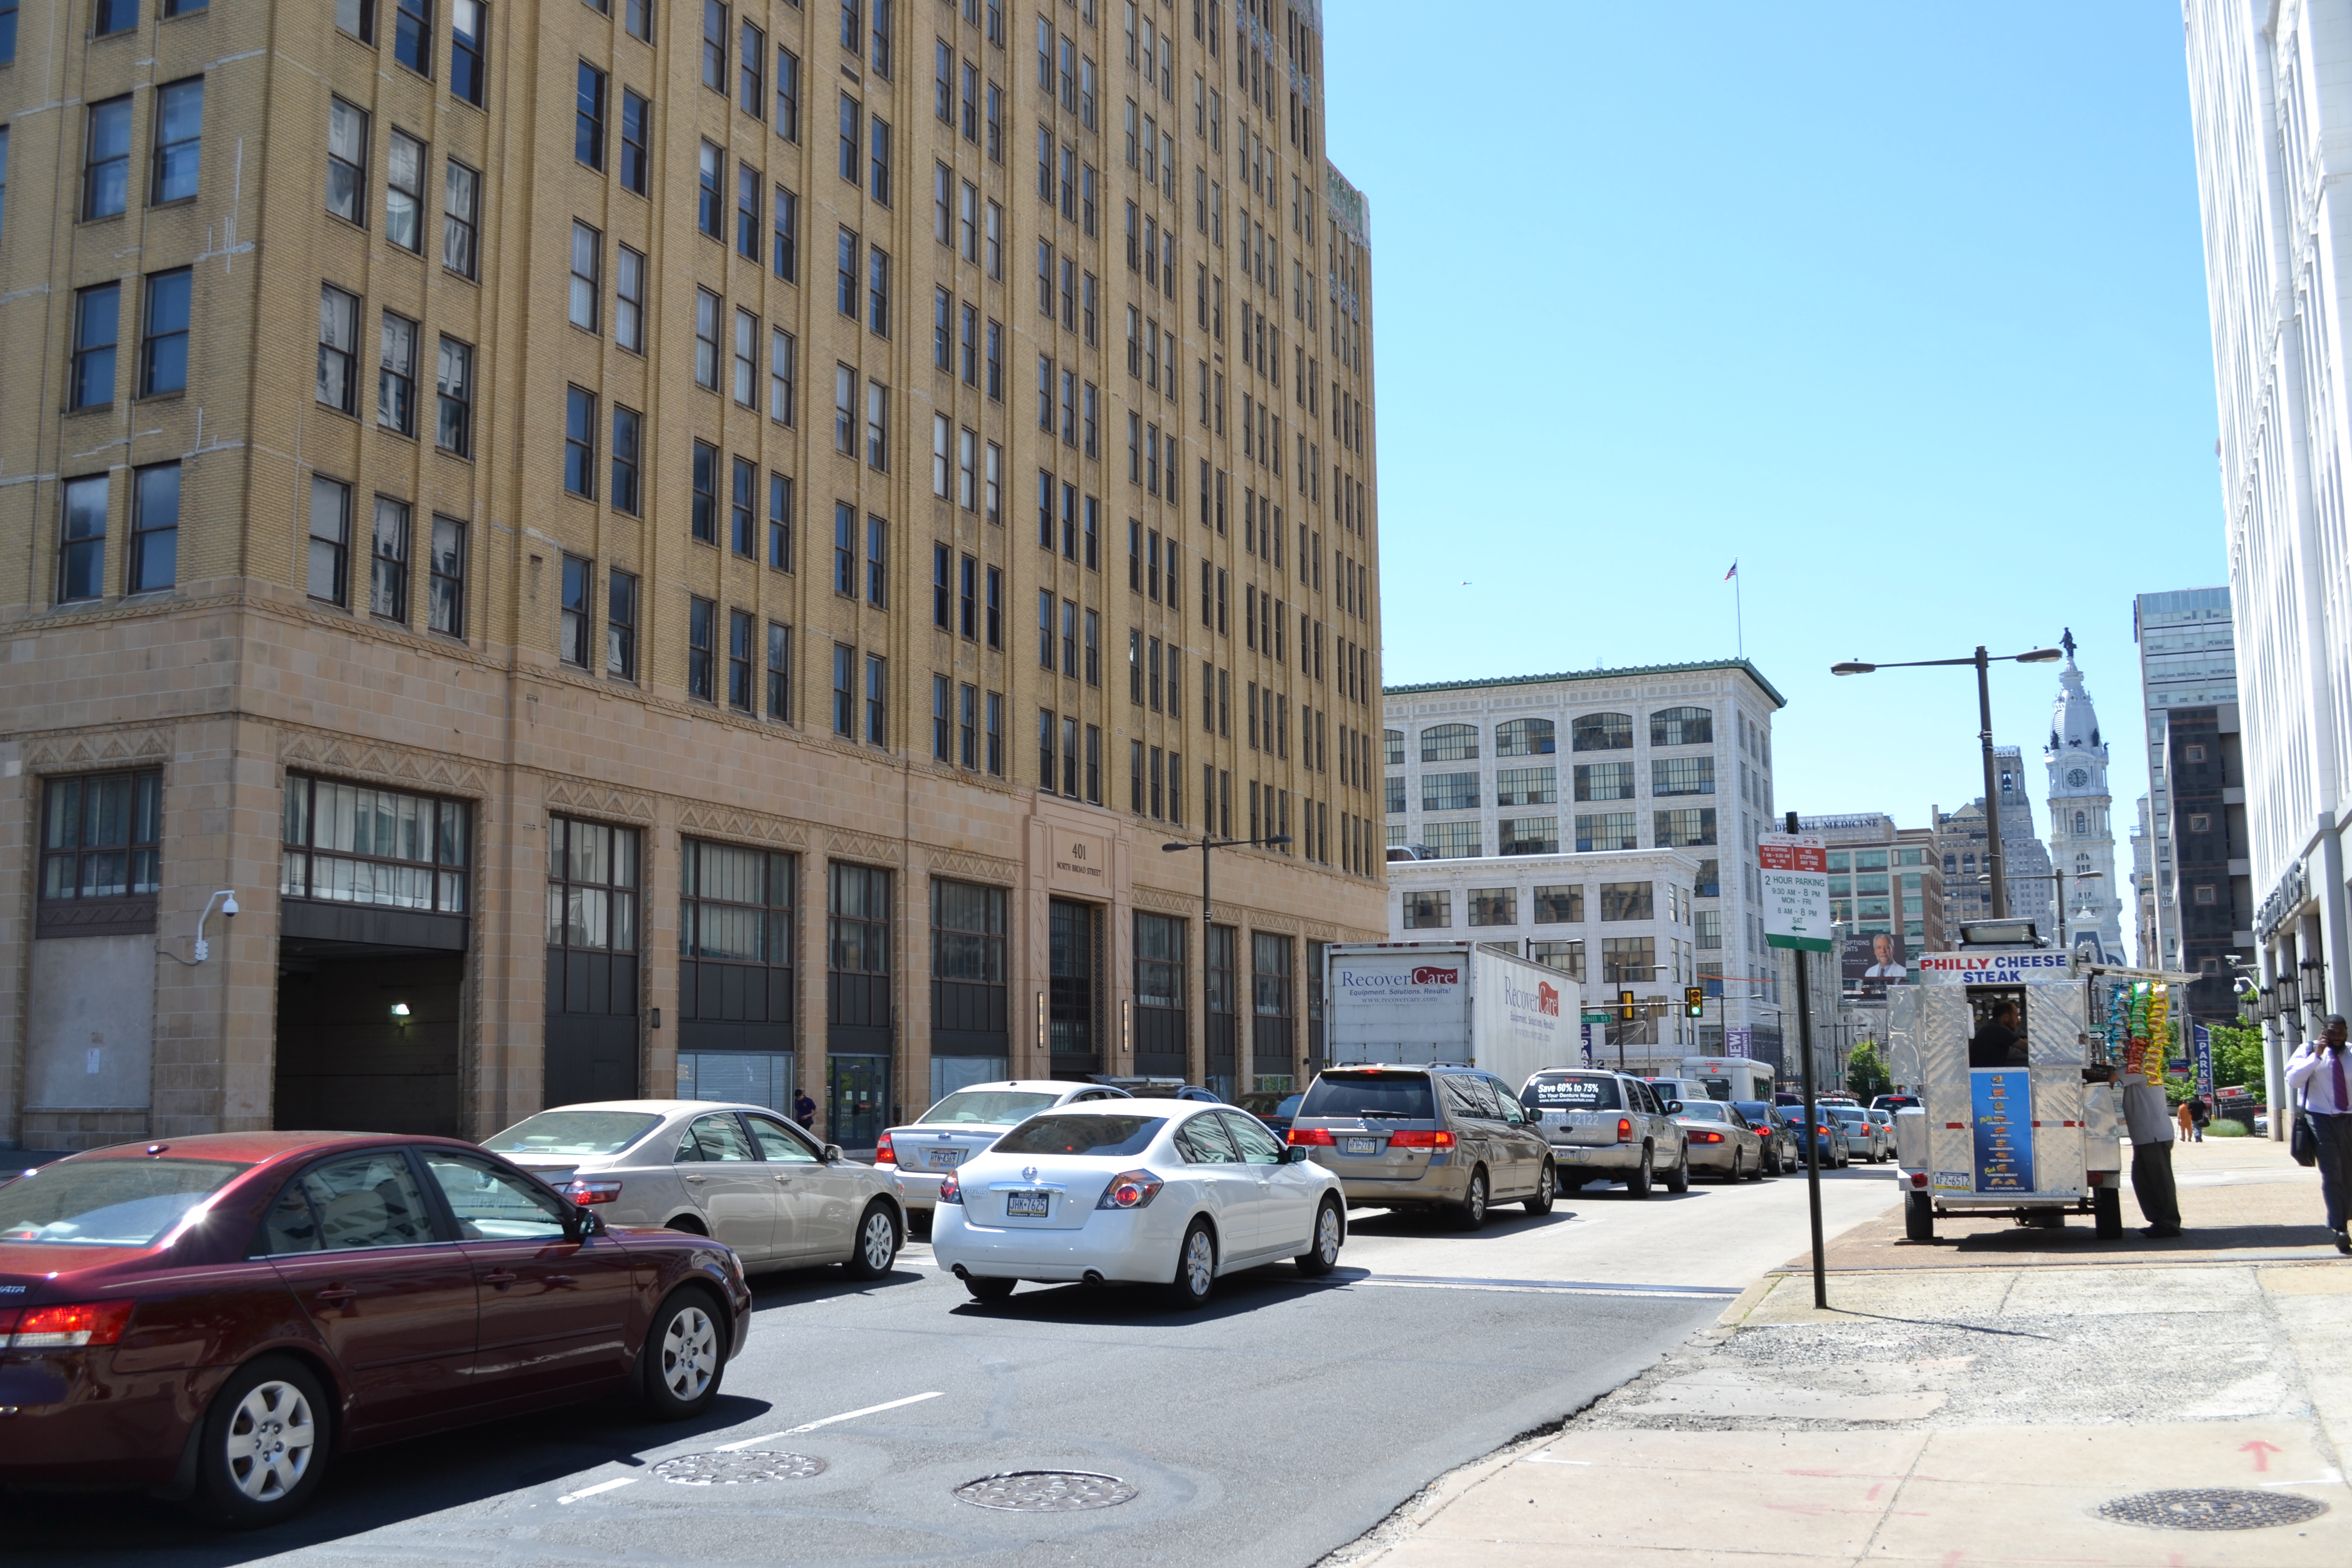 PennDOT will replace the bridge that supports Broad Street from Callowhill to Noble streets